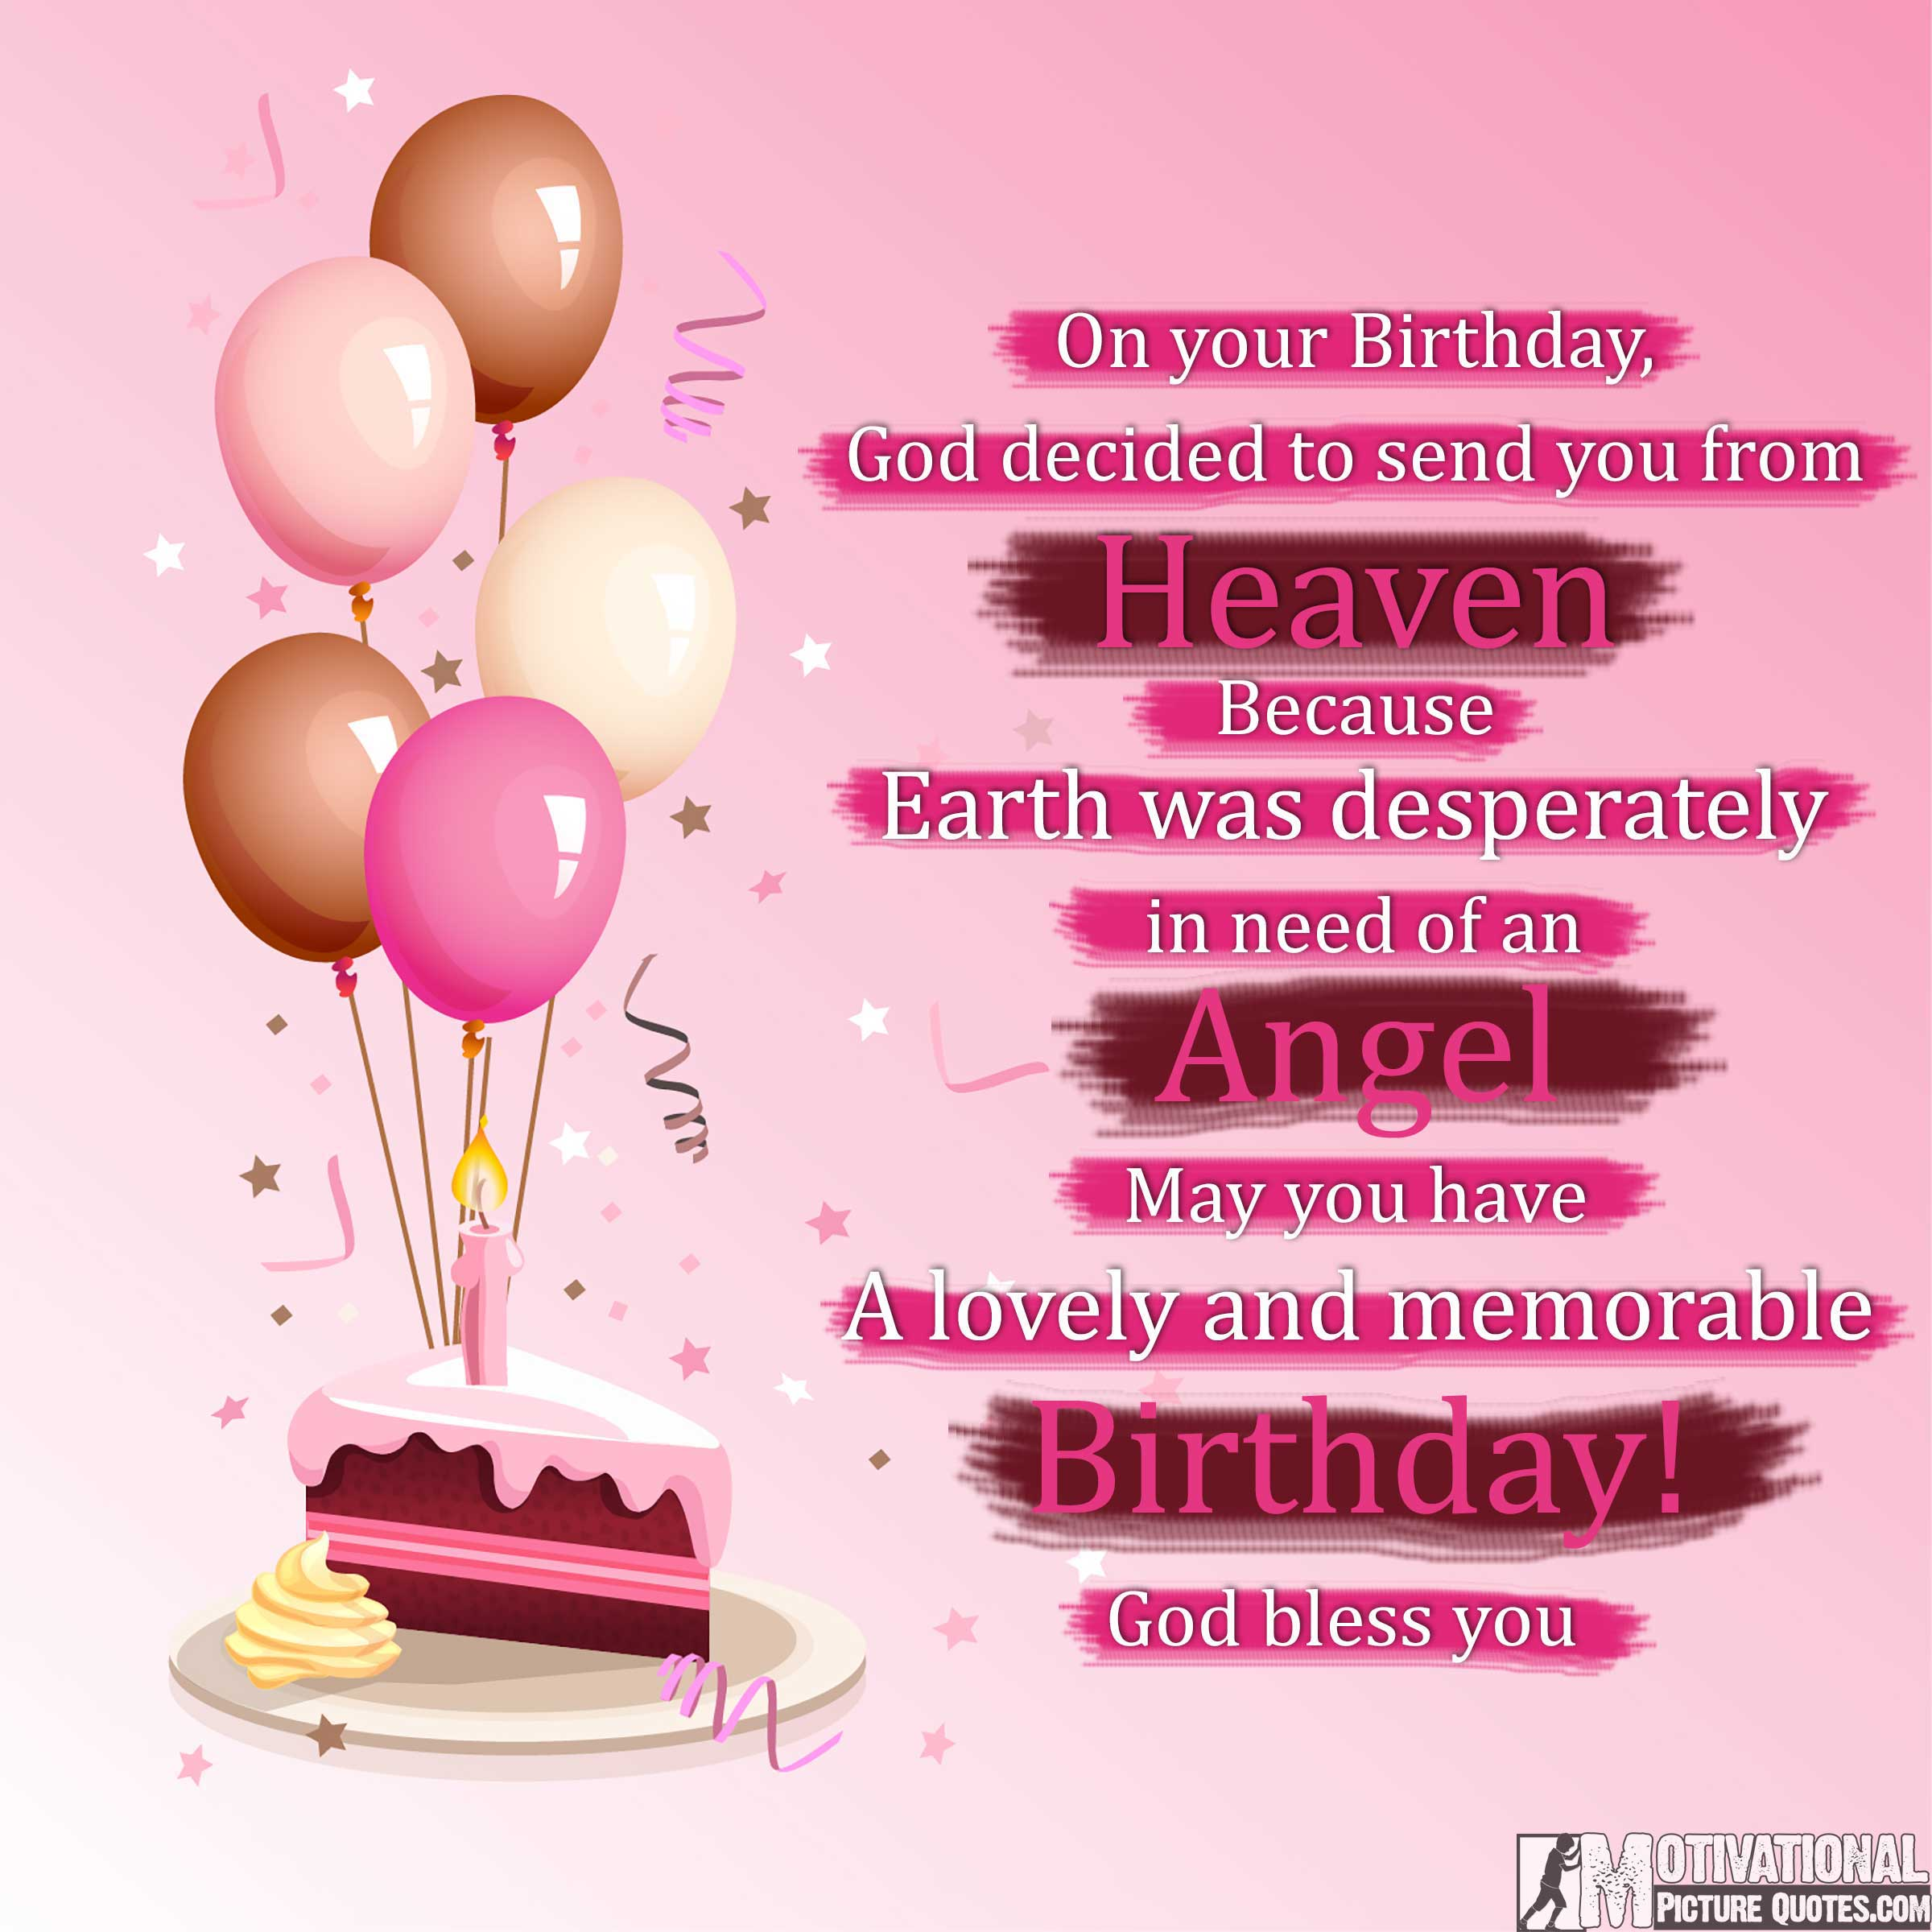 35 Inspirational Birthday Quotes Images Insbright Lovely Happy Birthday Wishes Quotes